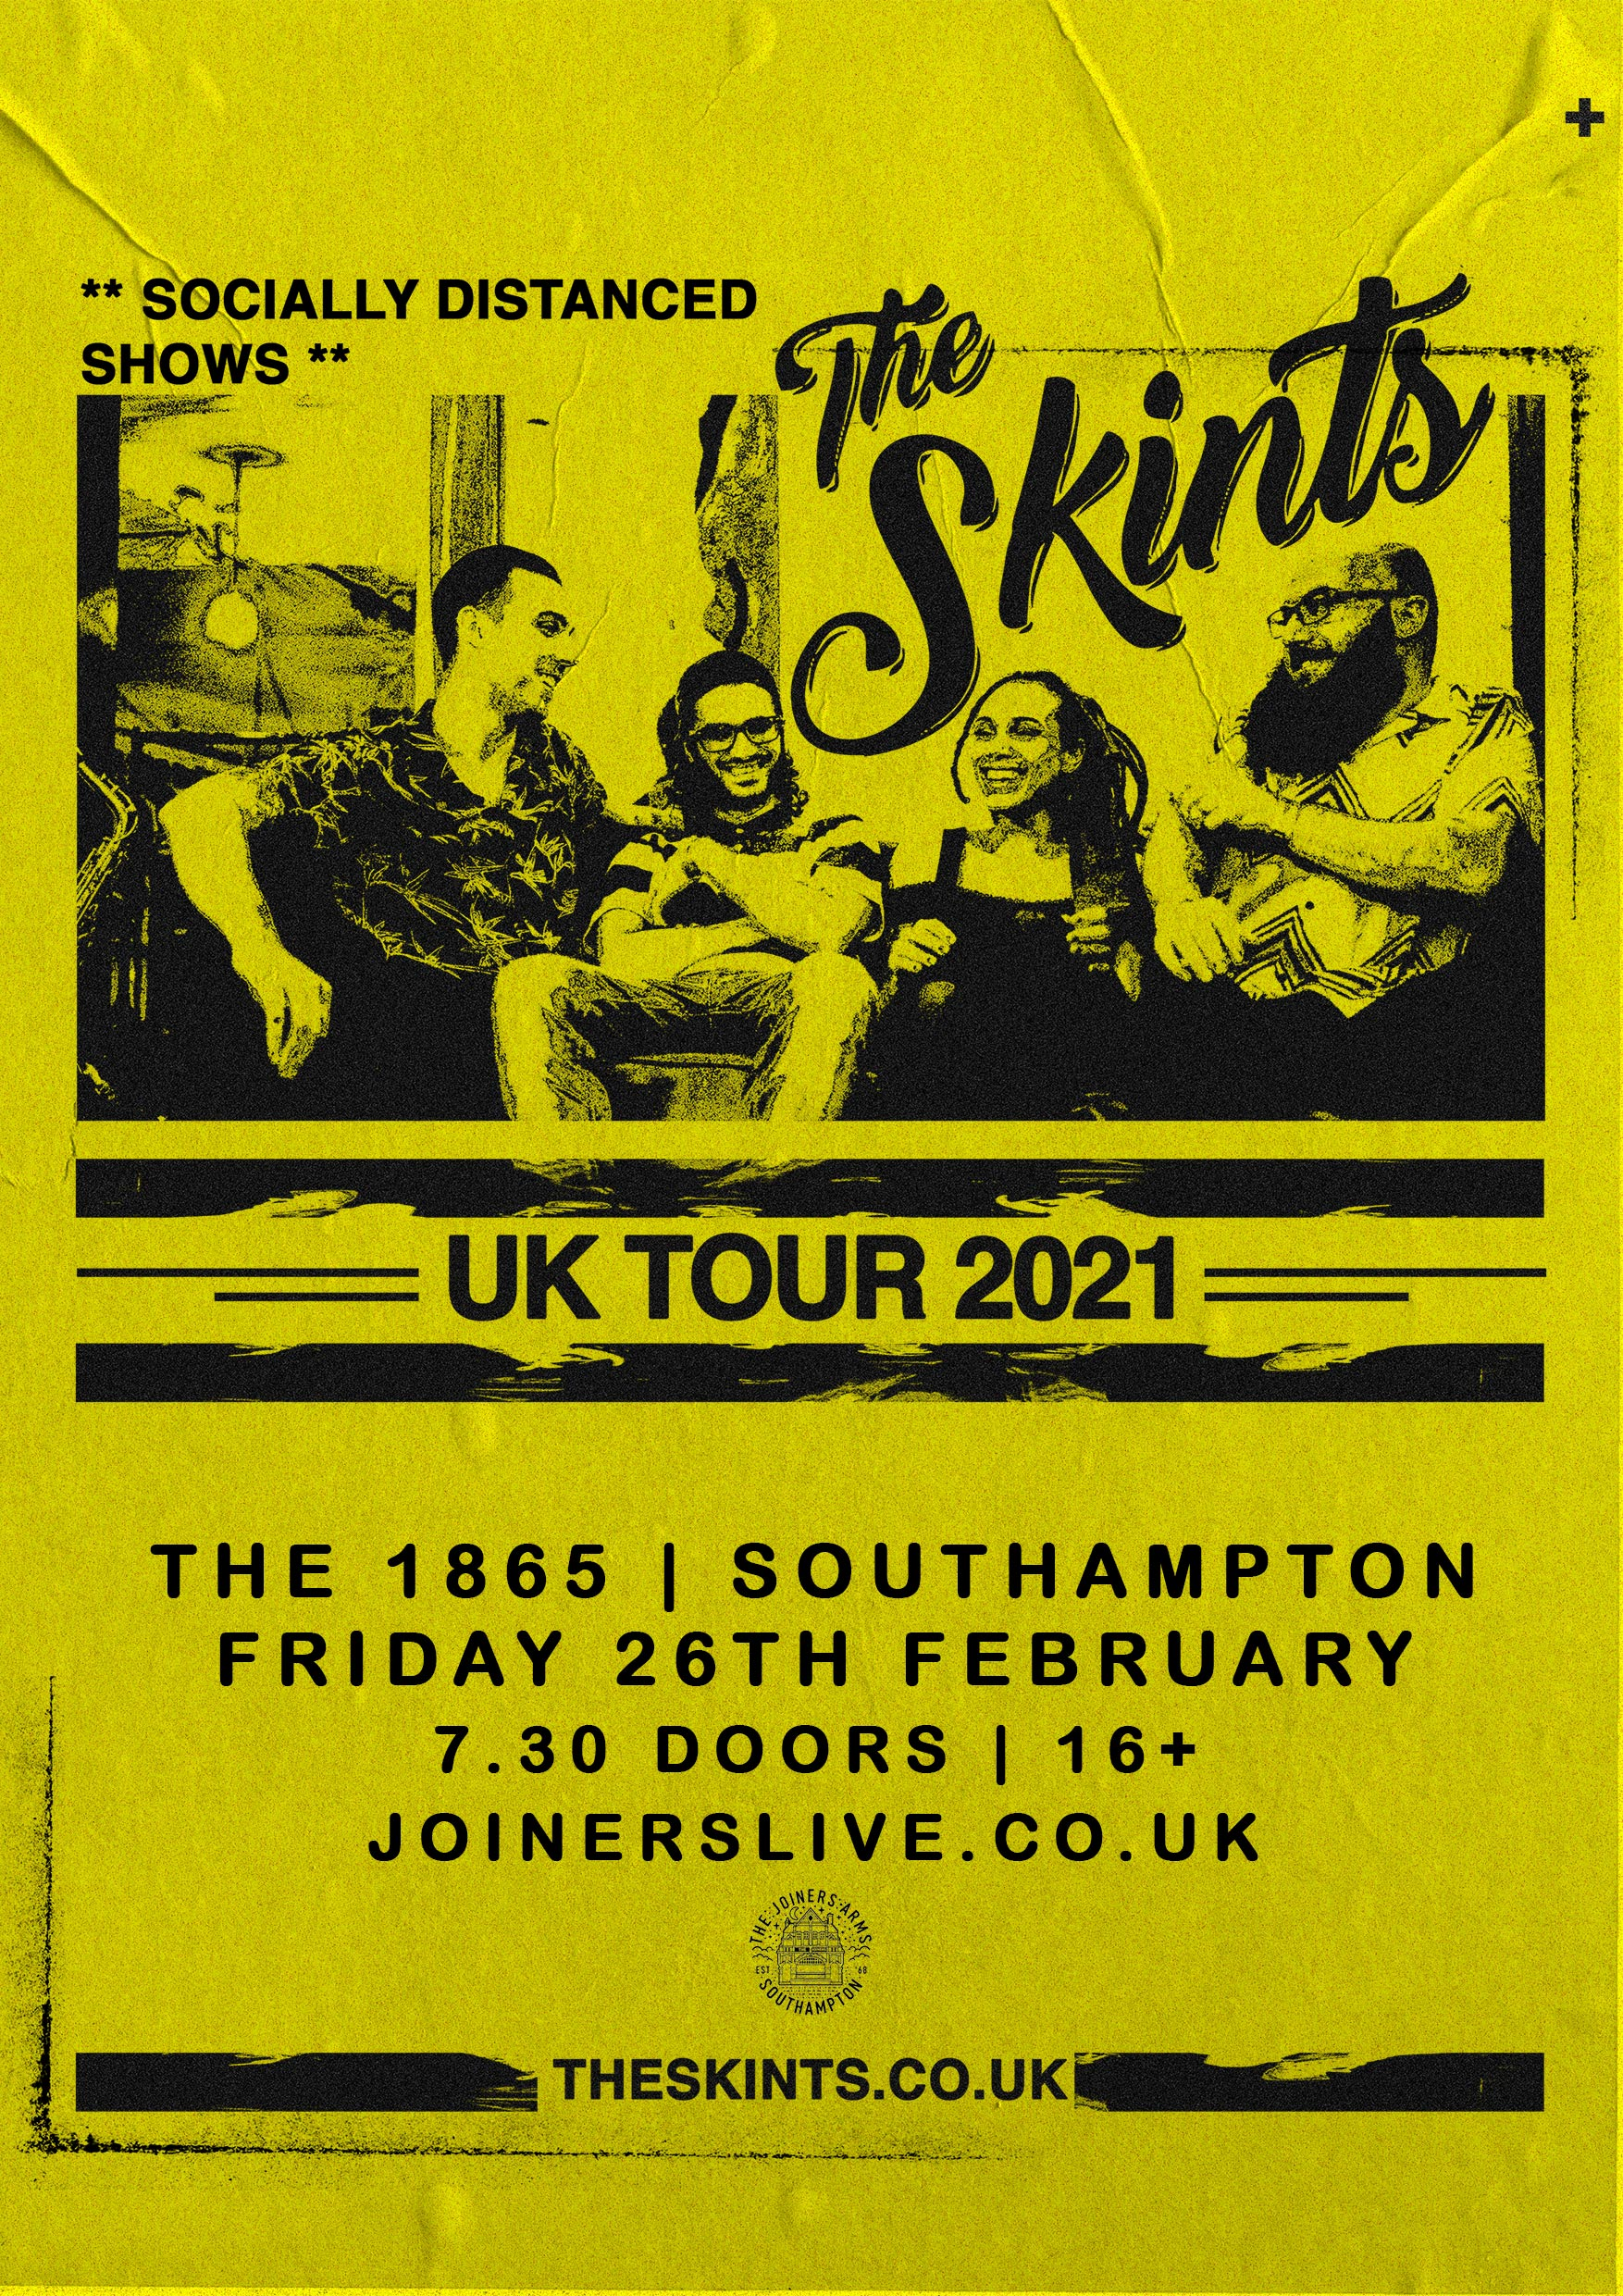 THE SKINTS AT THE 1865